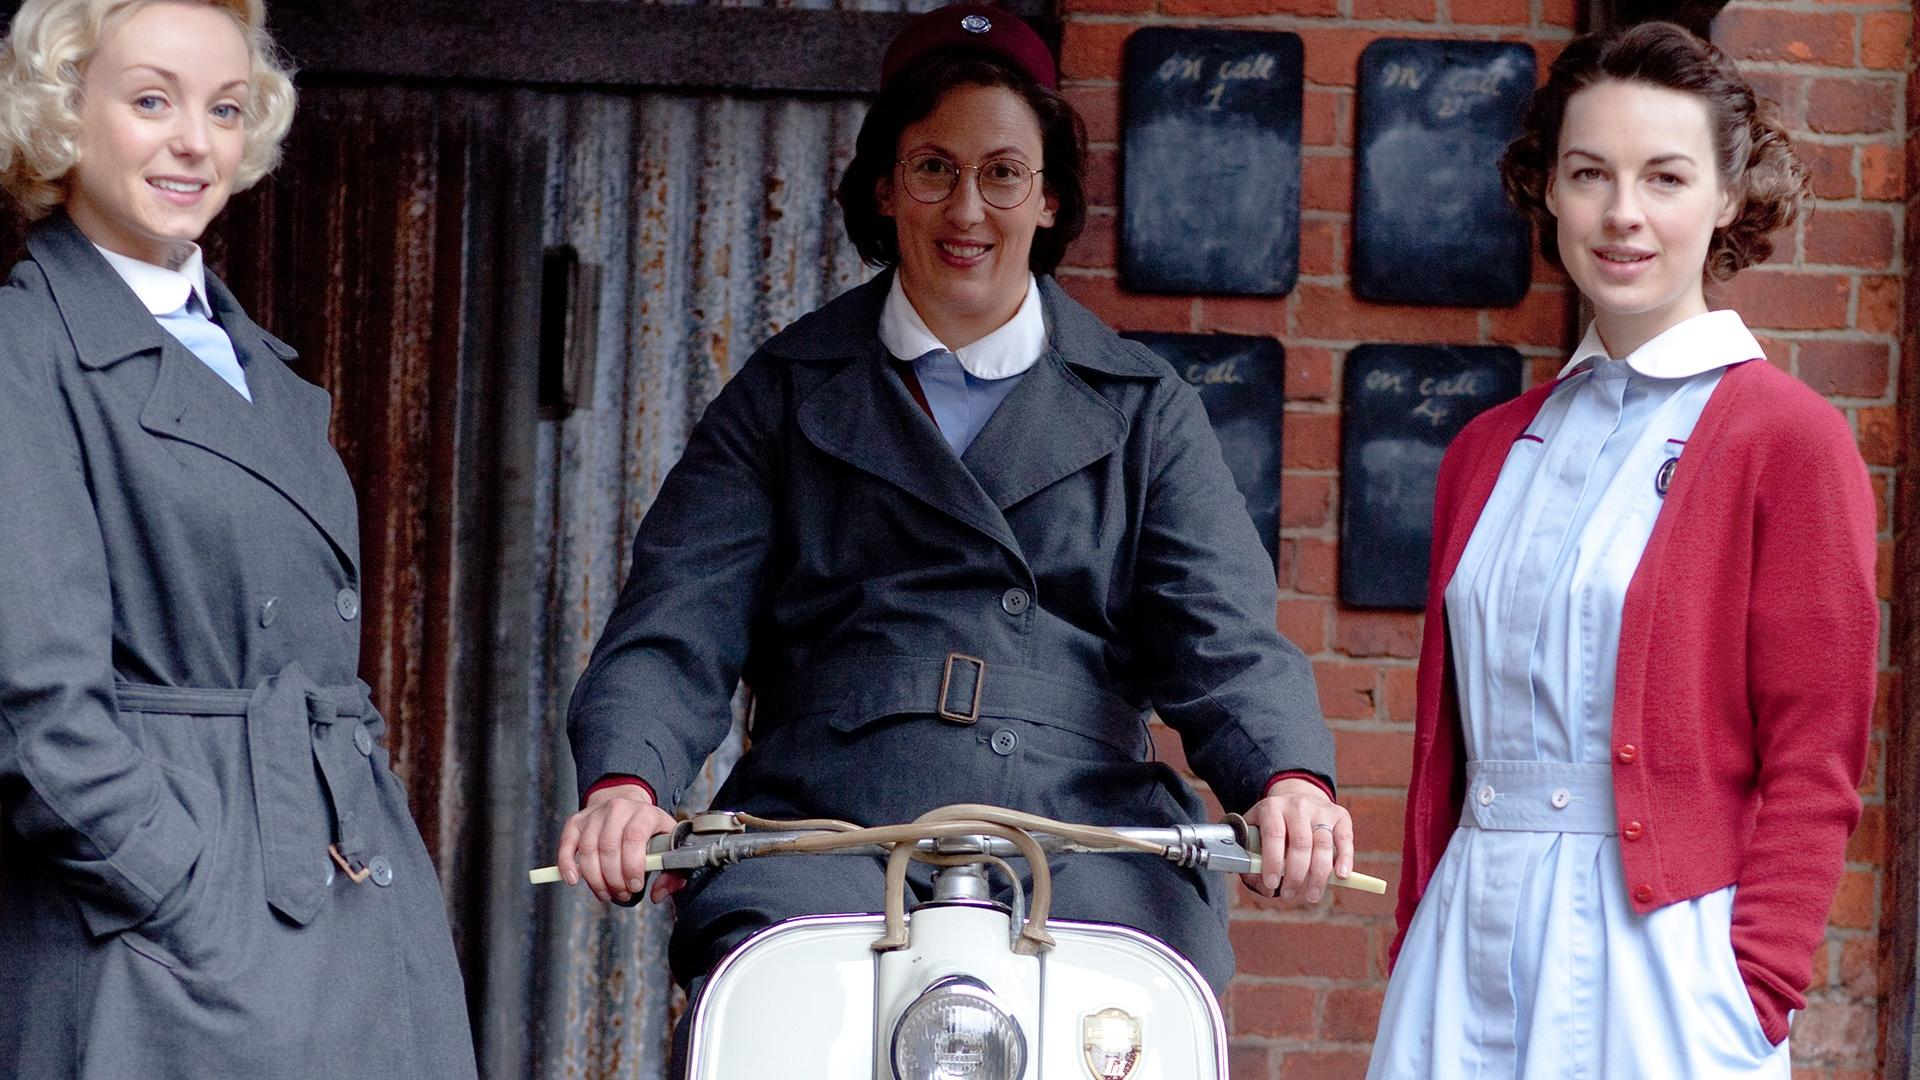 http://image.pbs.org/video-assets/pbs/call-midwife/84462/images/Mezzanine_619.jpg